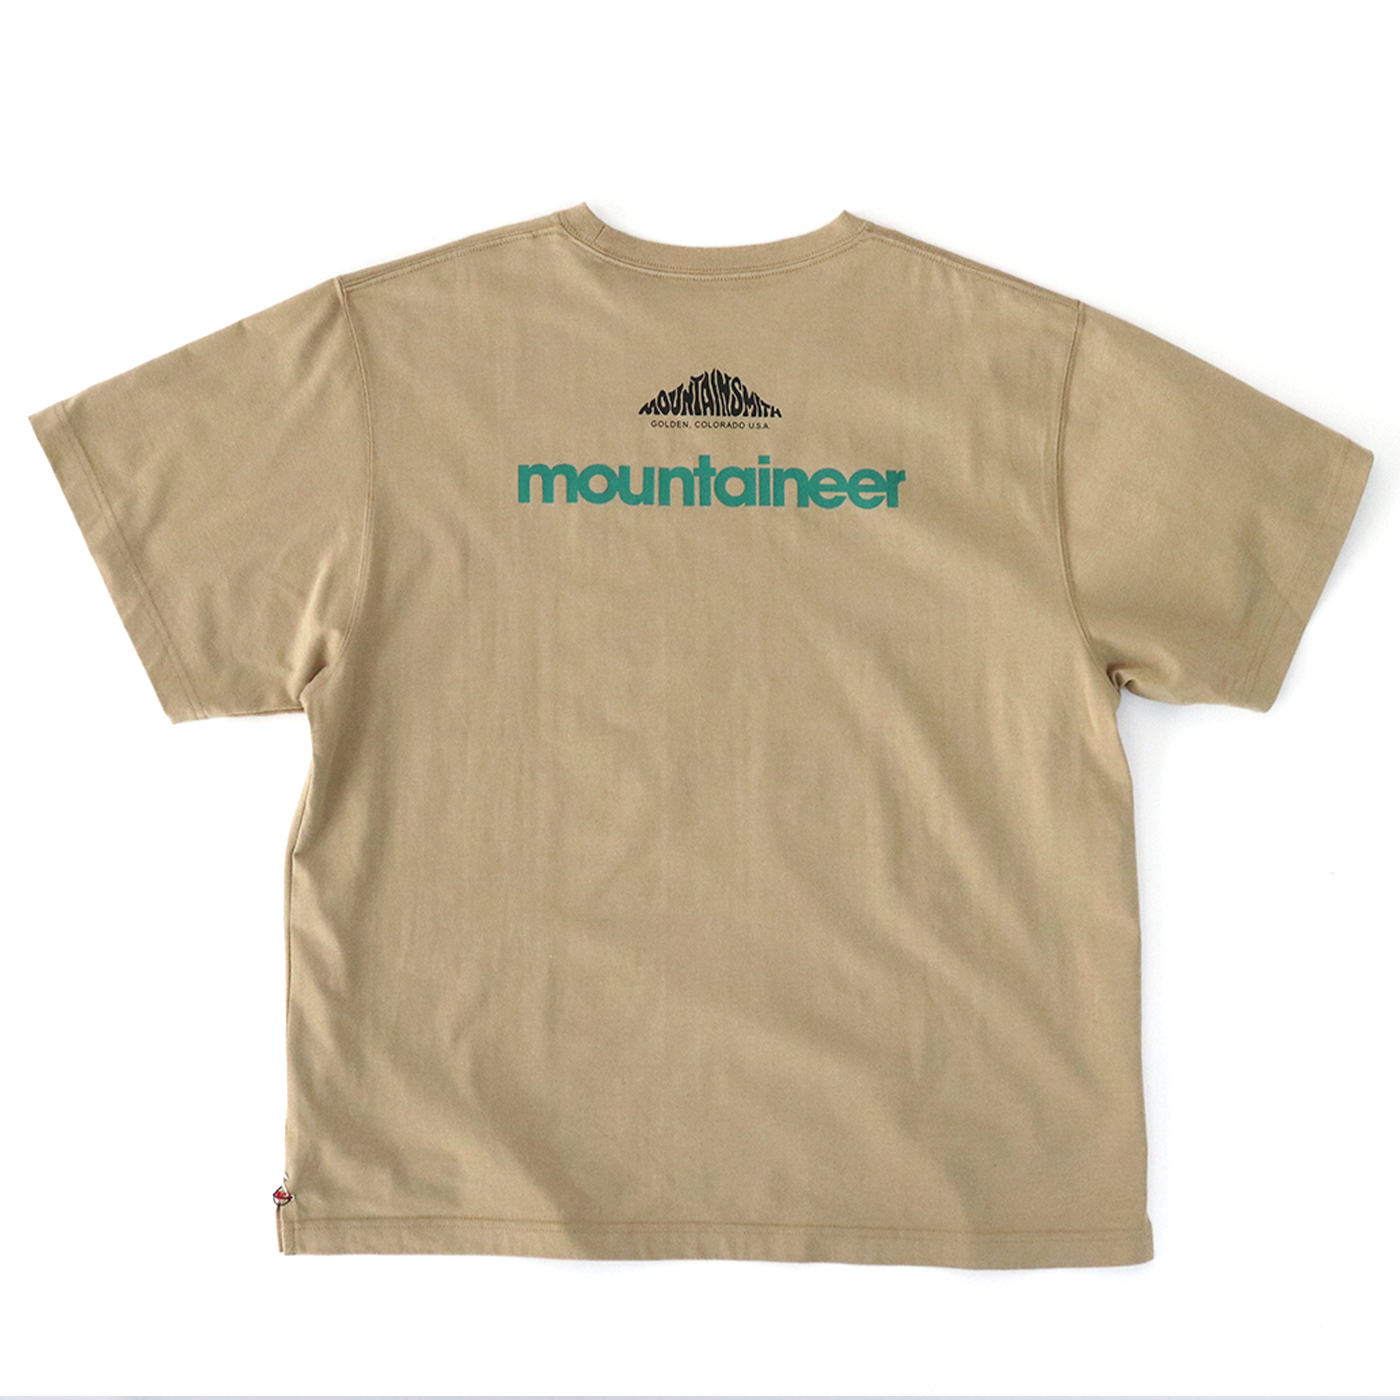 product: MOUNTAINEER / color: BEIGE 2